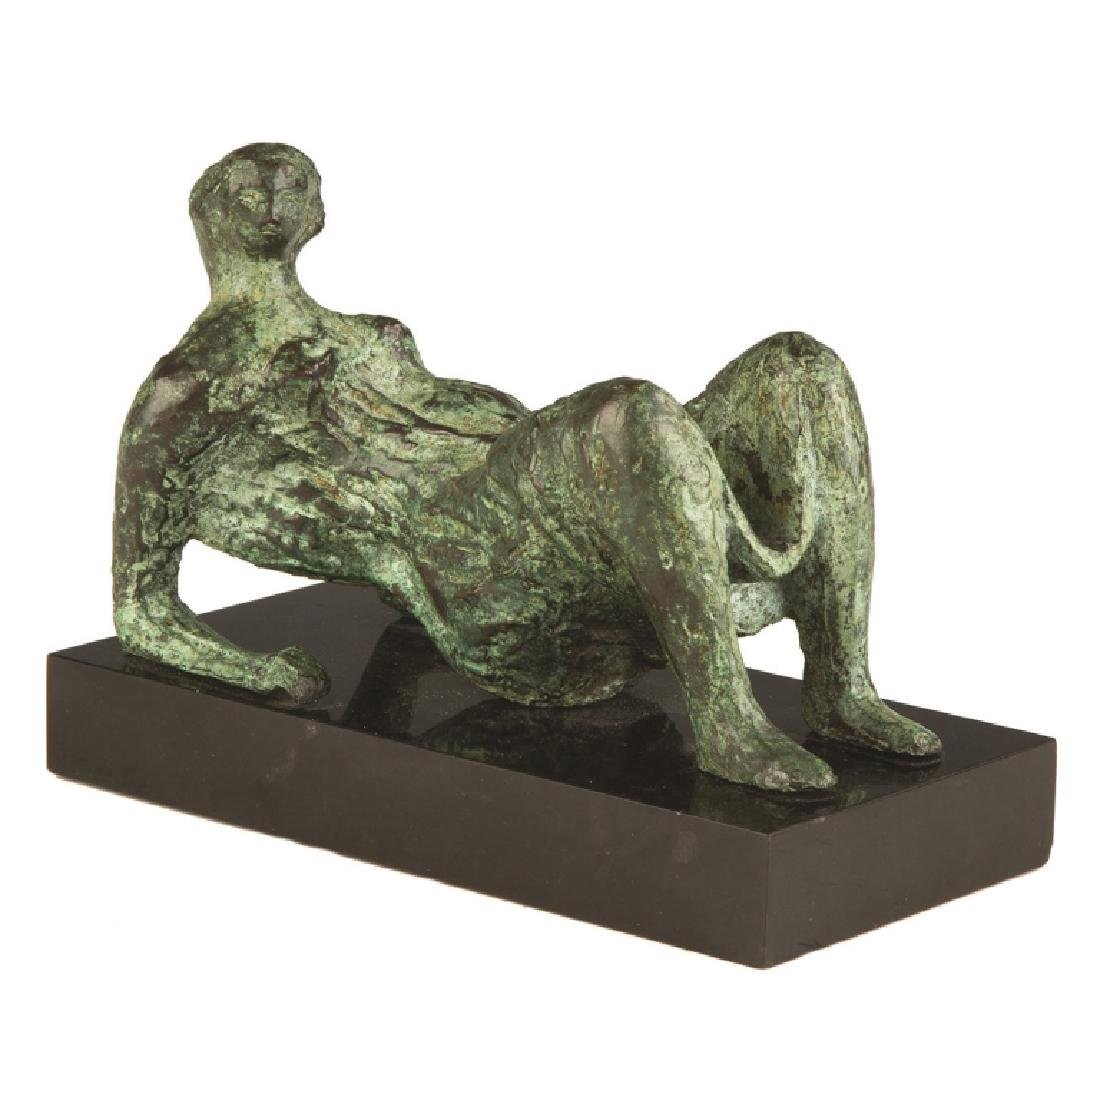 Henry Moore (British, 1898-1986) Bronze Sculpture